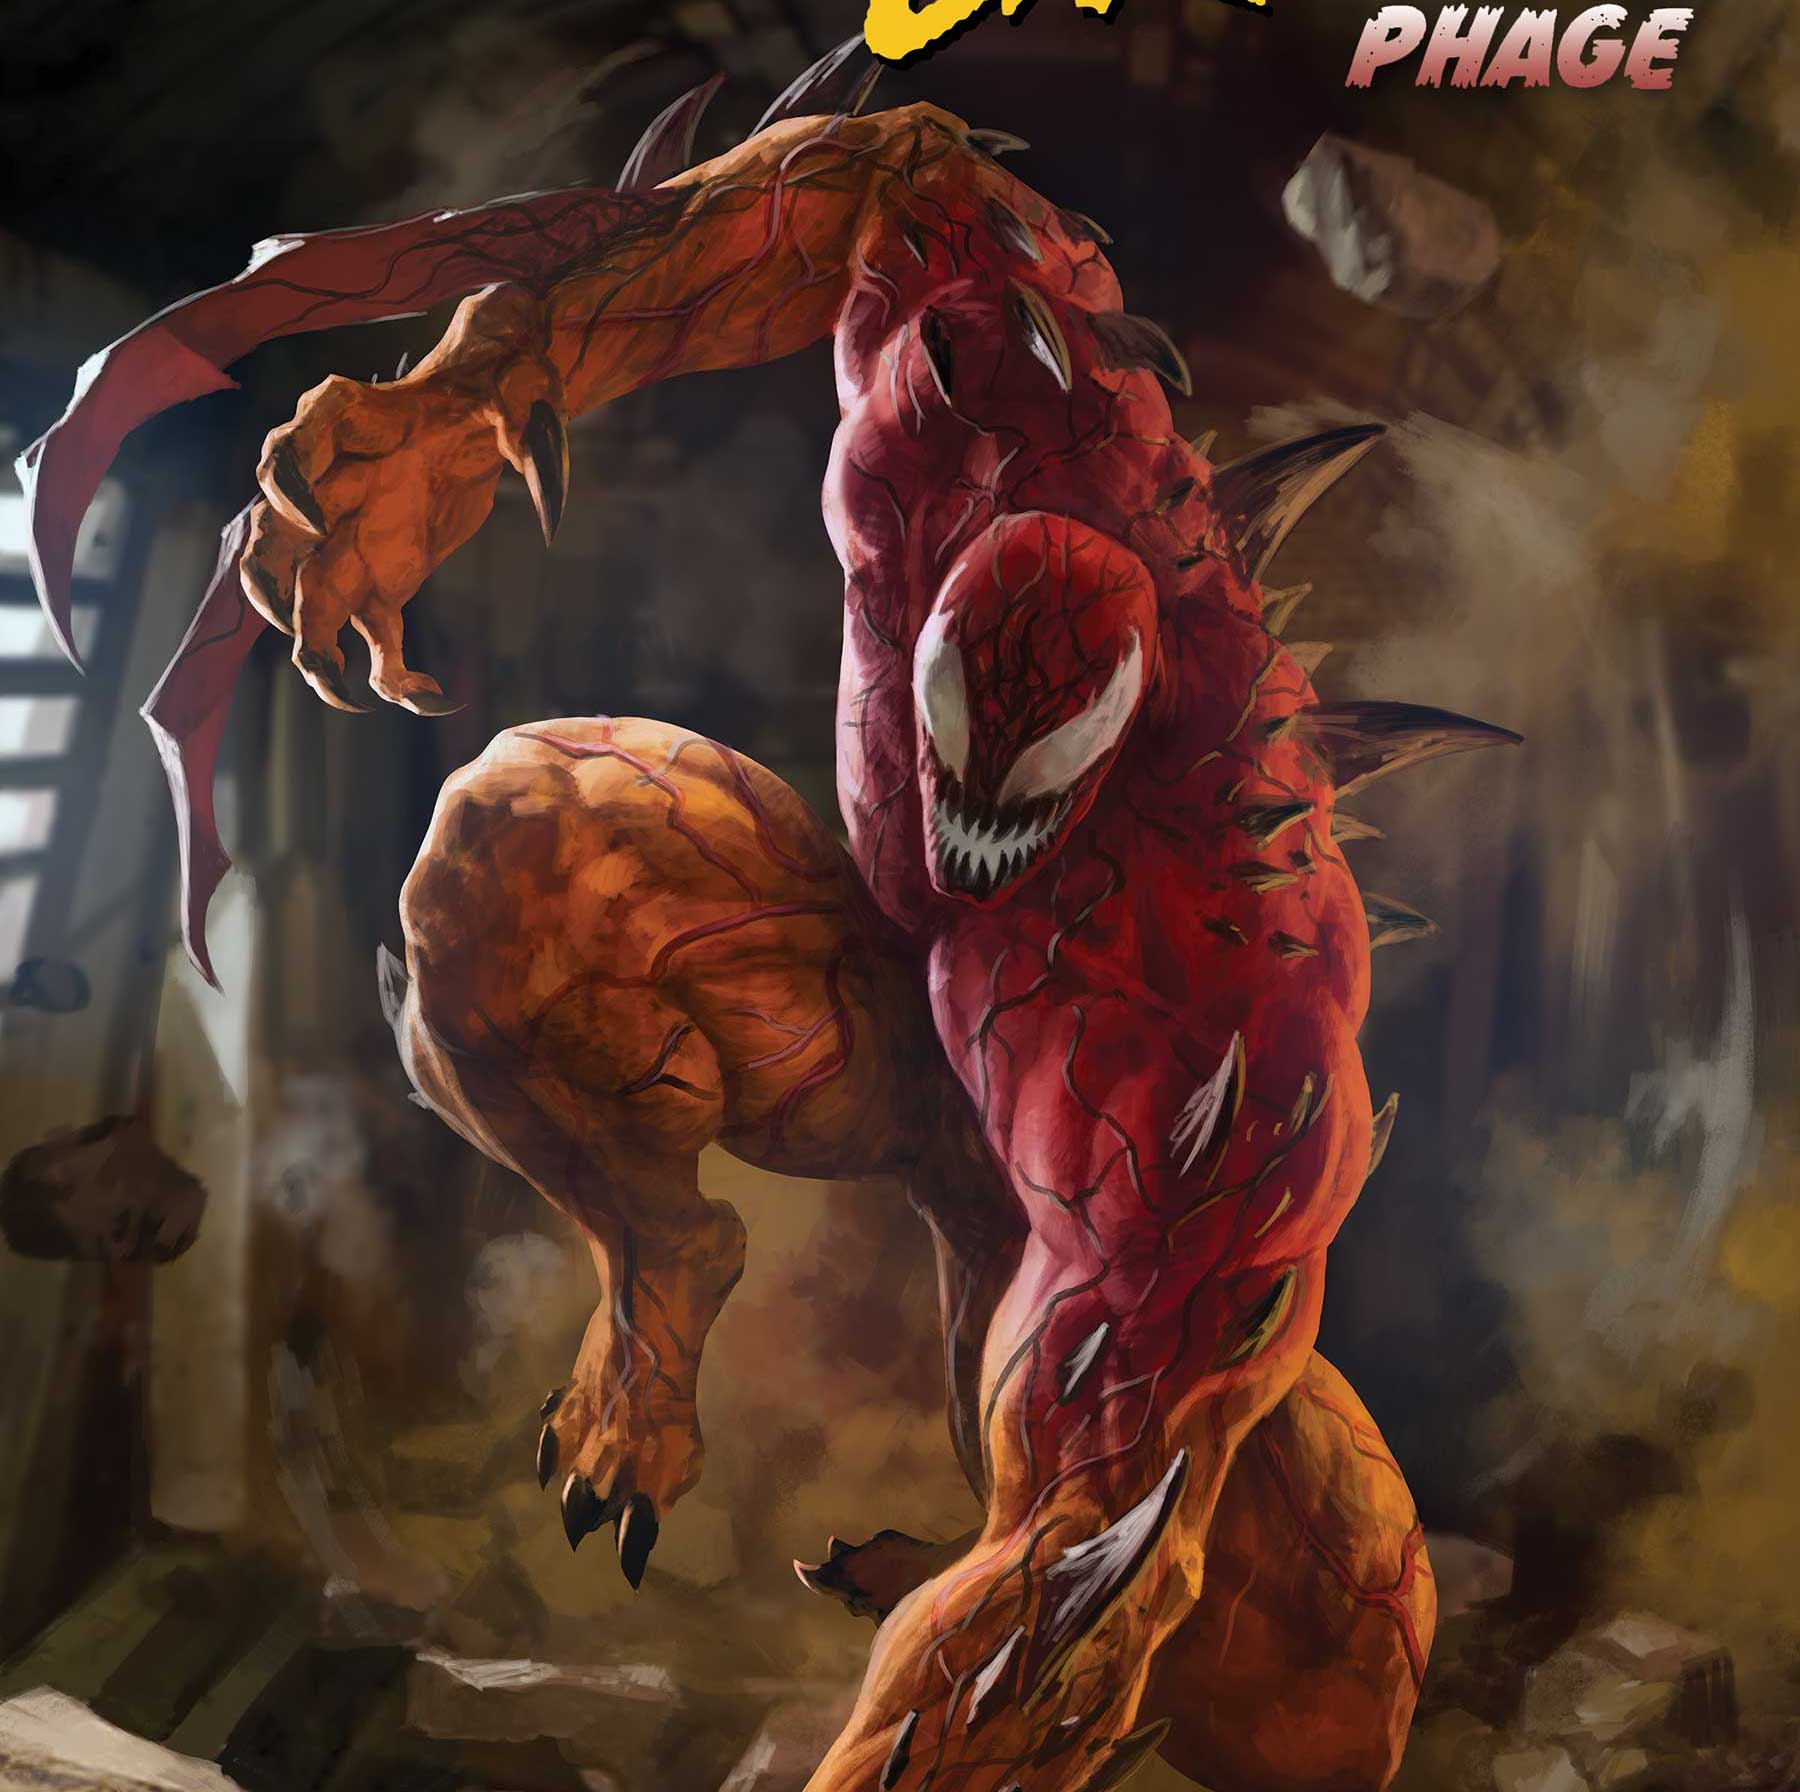 Marvel announces 'Extreme Carnage: Phage' #1 for July 2021